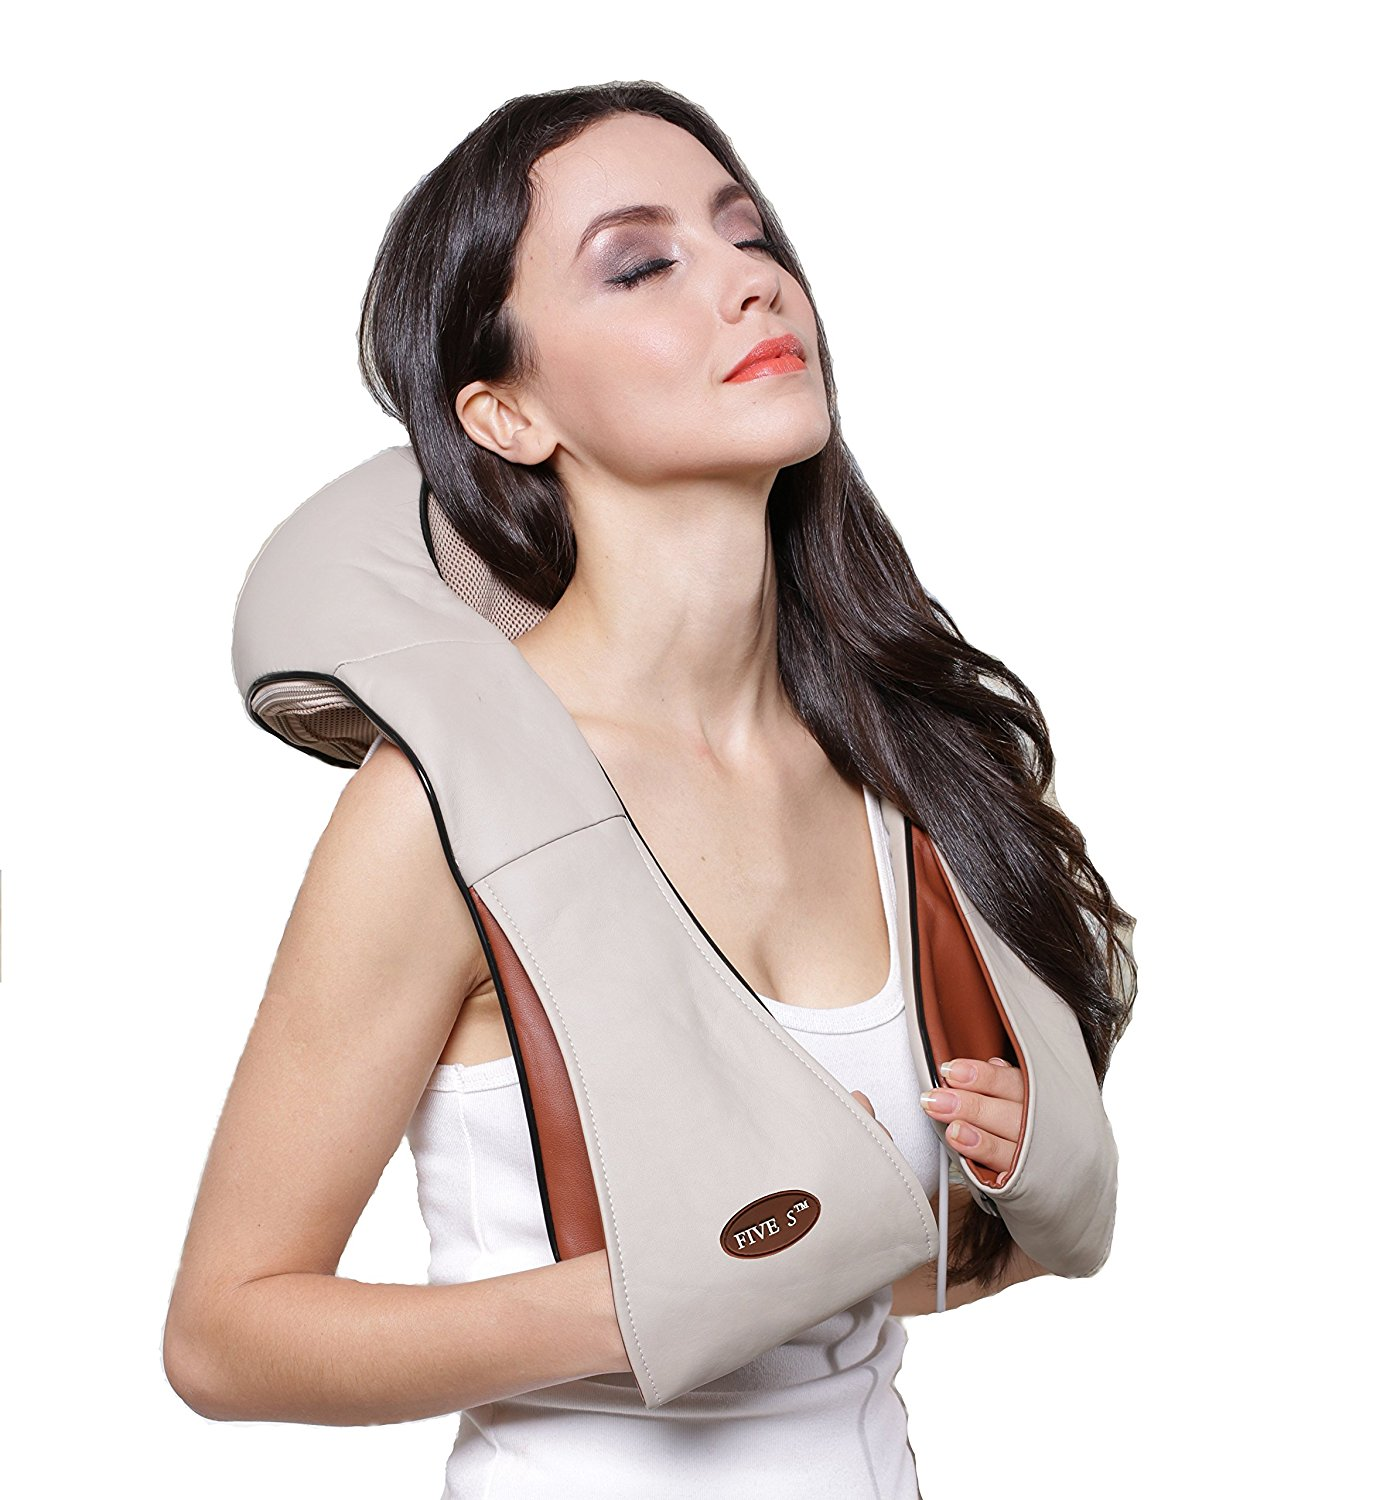 Shiatsu Neck & Back Massager with Heat , Shoulder, Foot Massager - Kneading Massage Pillow With Heat, $49.99 on Amazon Prime (Image courtesy of Amazon).